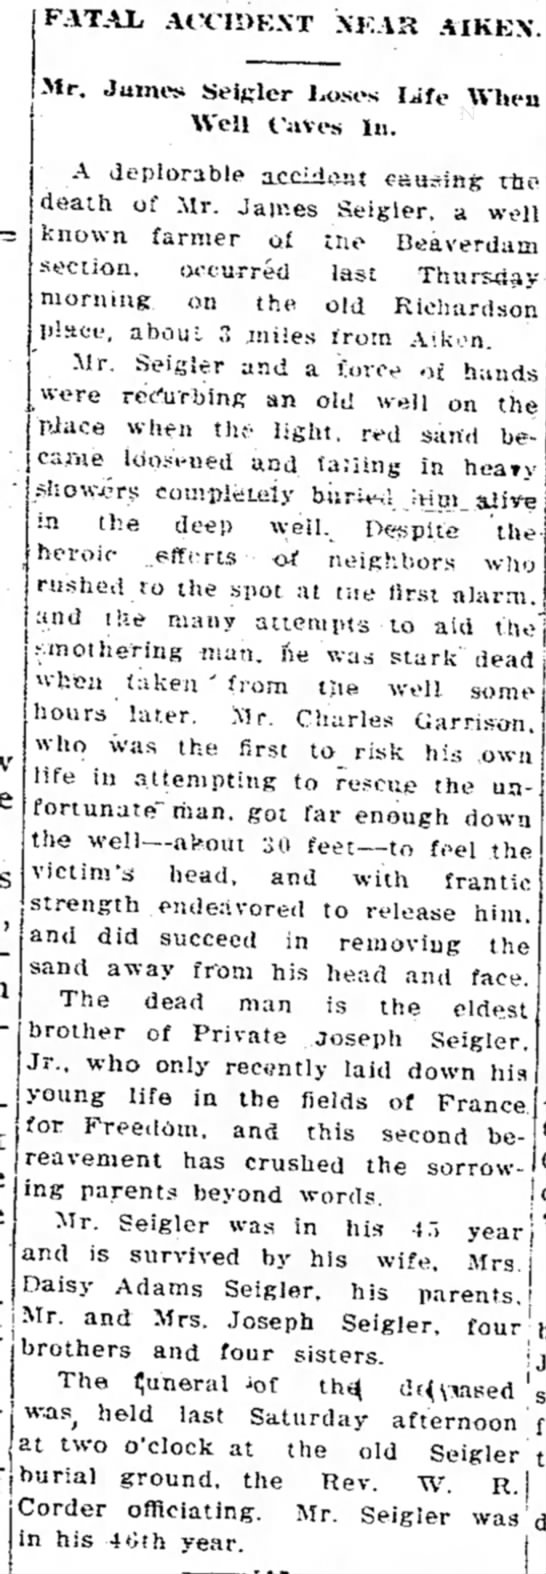 James Seigler dies in well cave-in (27 Nov. 1918) Aiken, S.C. - FATAJL ACC!1>K.\T XKAK AIKEN. Mr. Jumes Seigler...